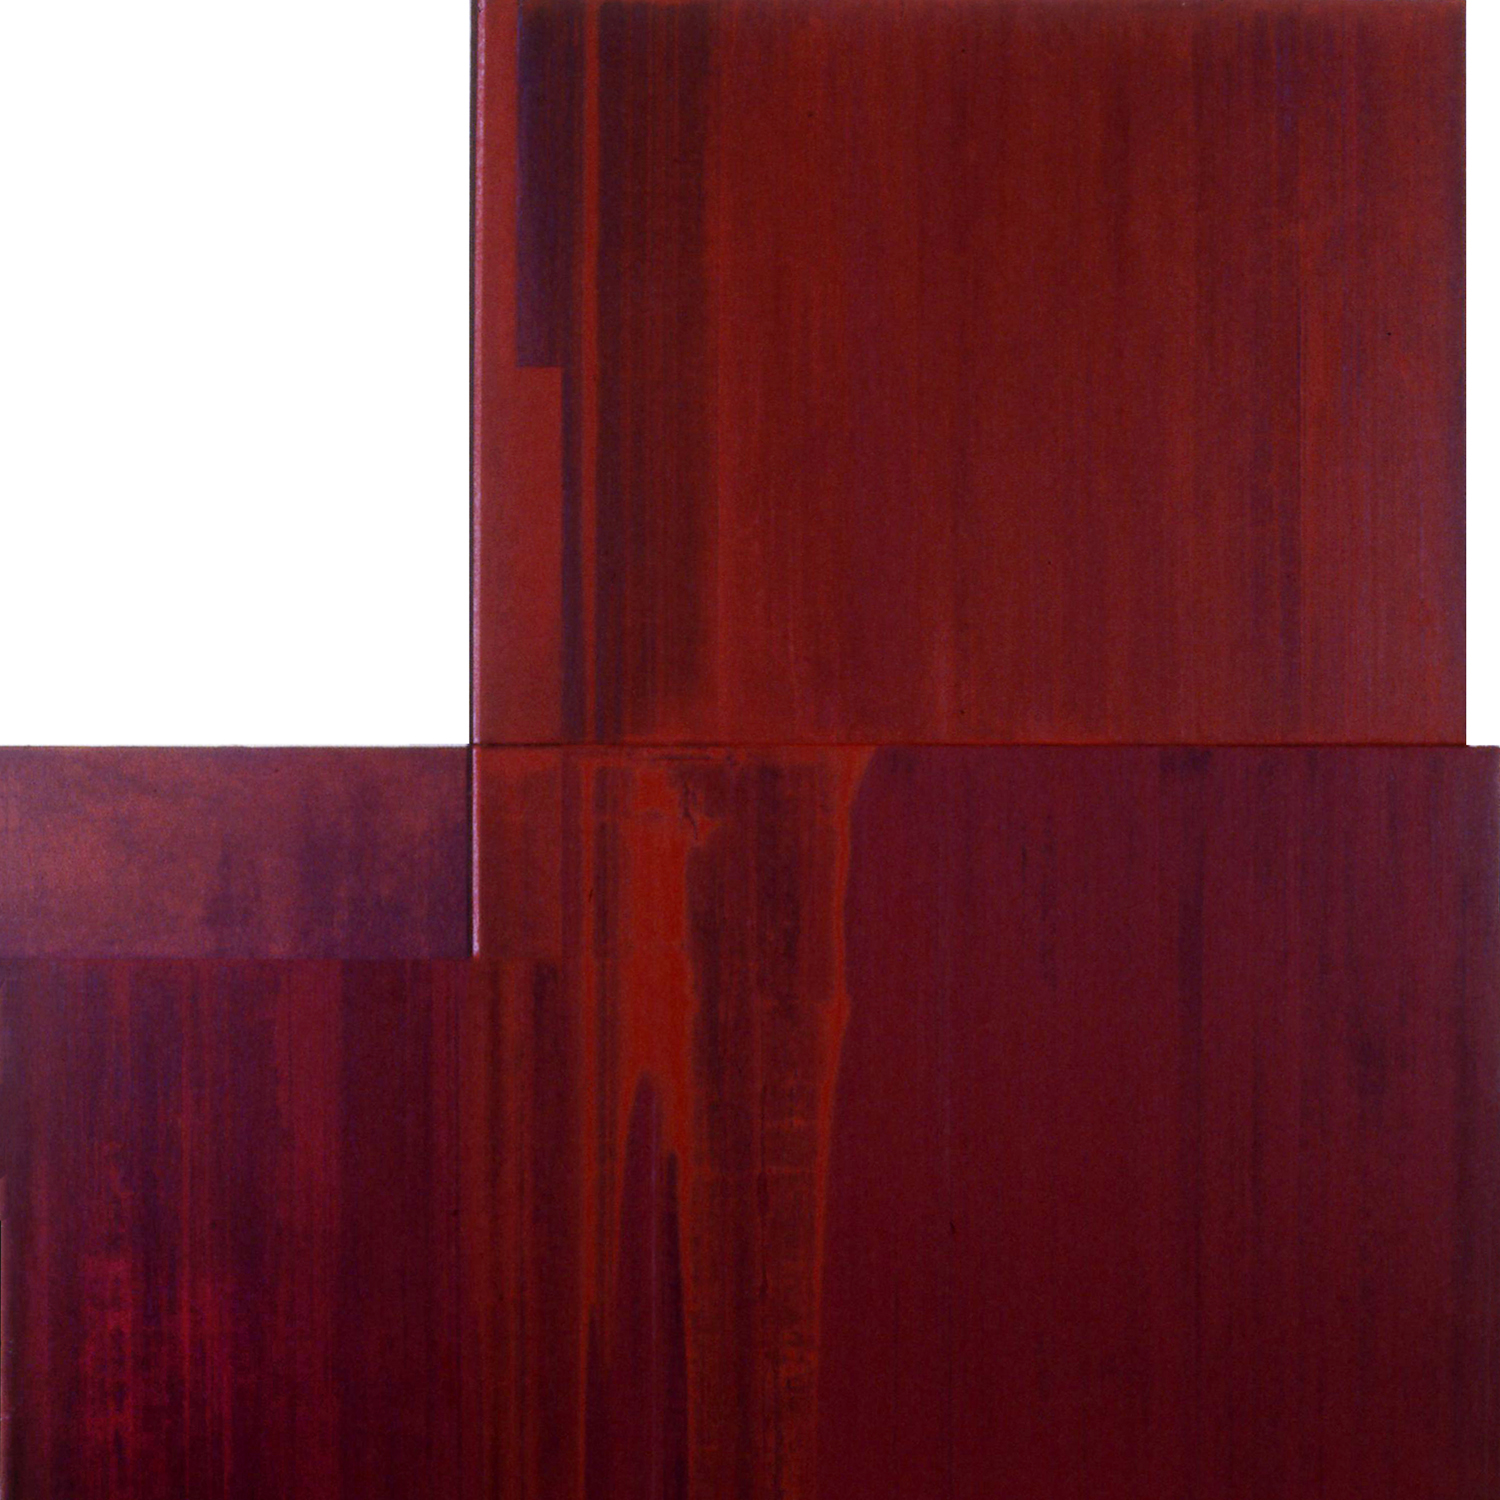 Divided Square 52, 1989, Acrylic on canvas over panels, 48 x 48 inches.